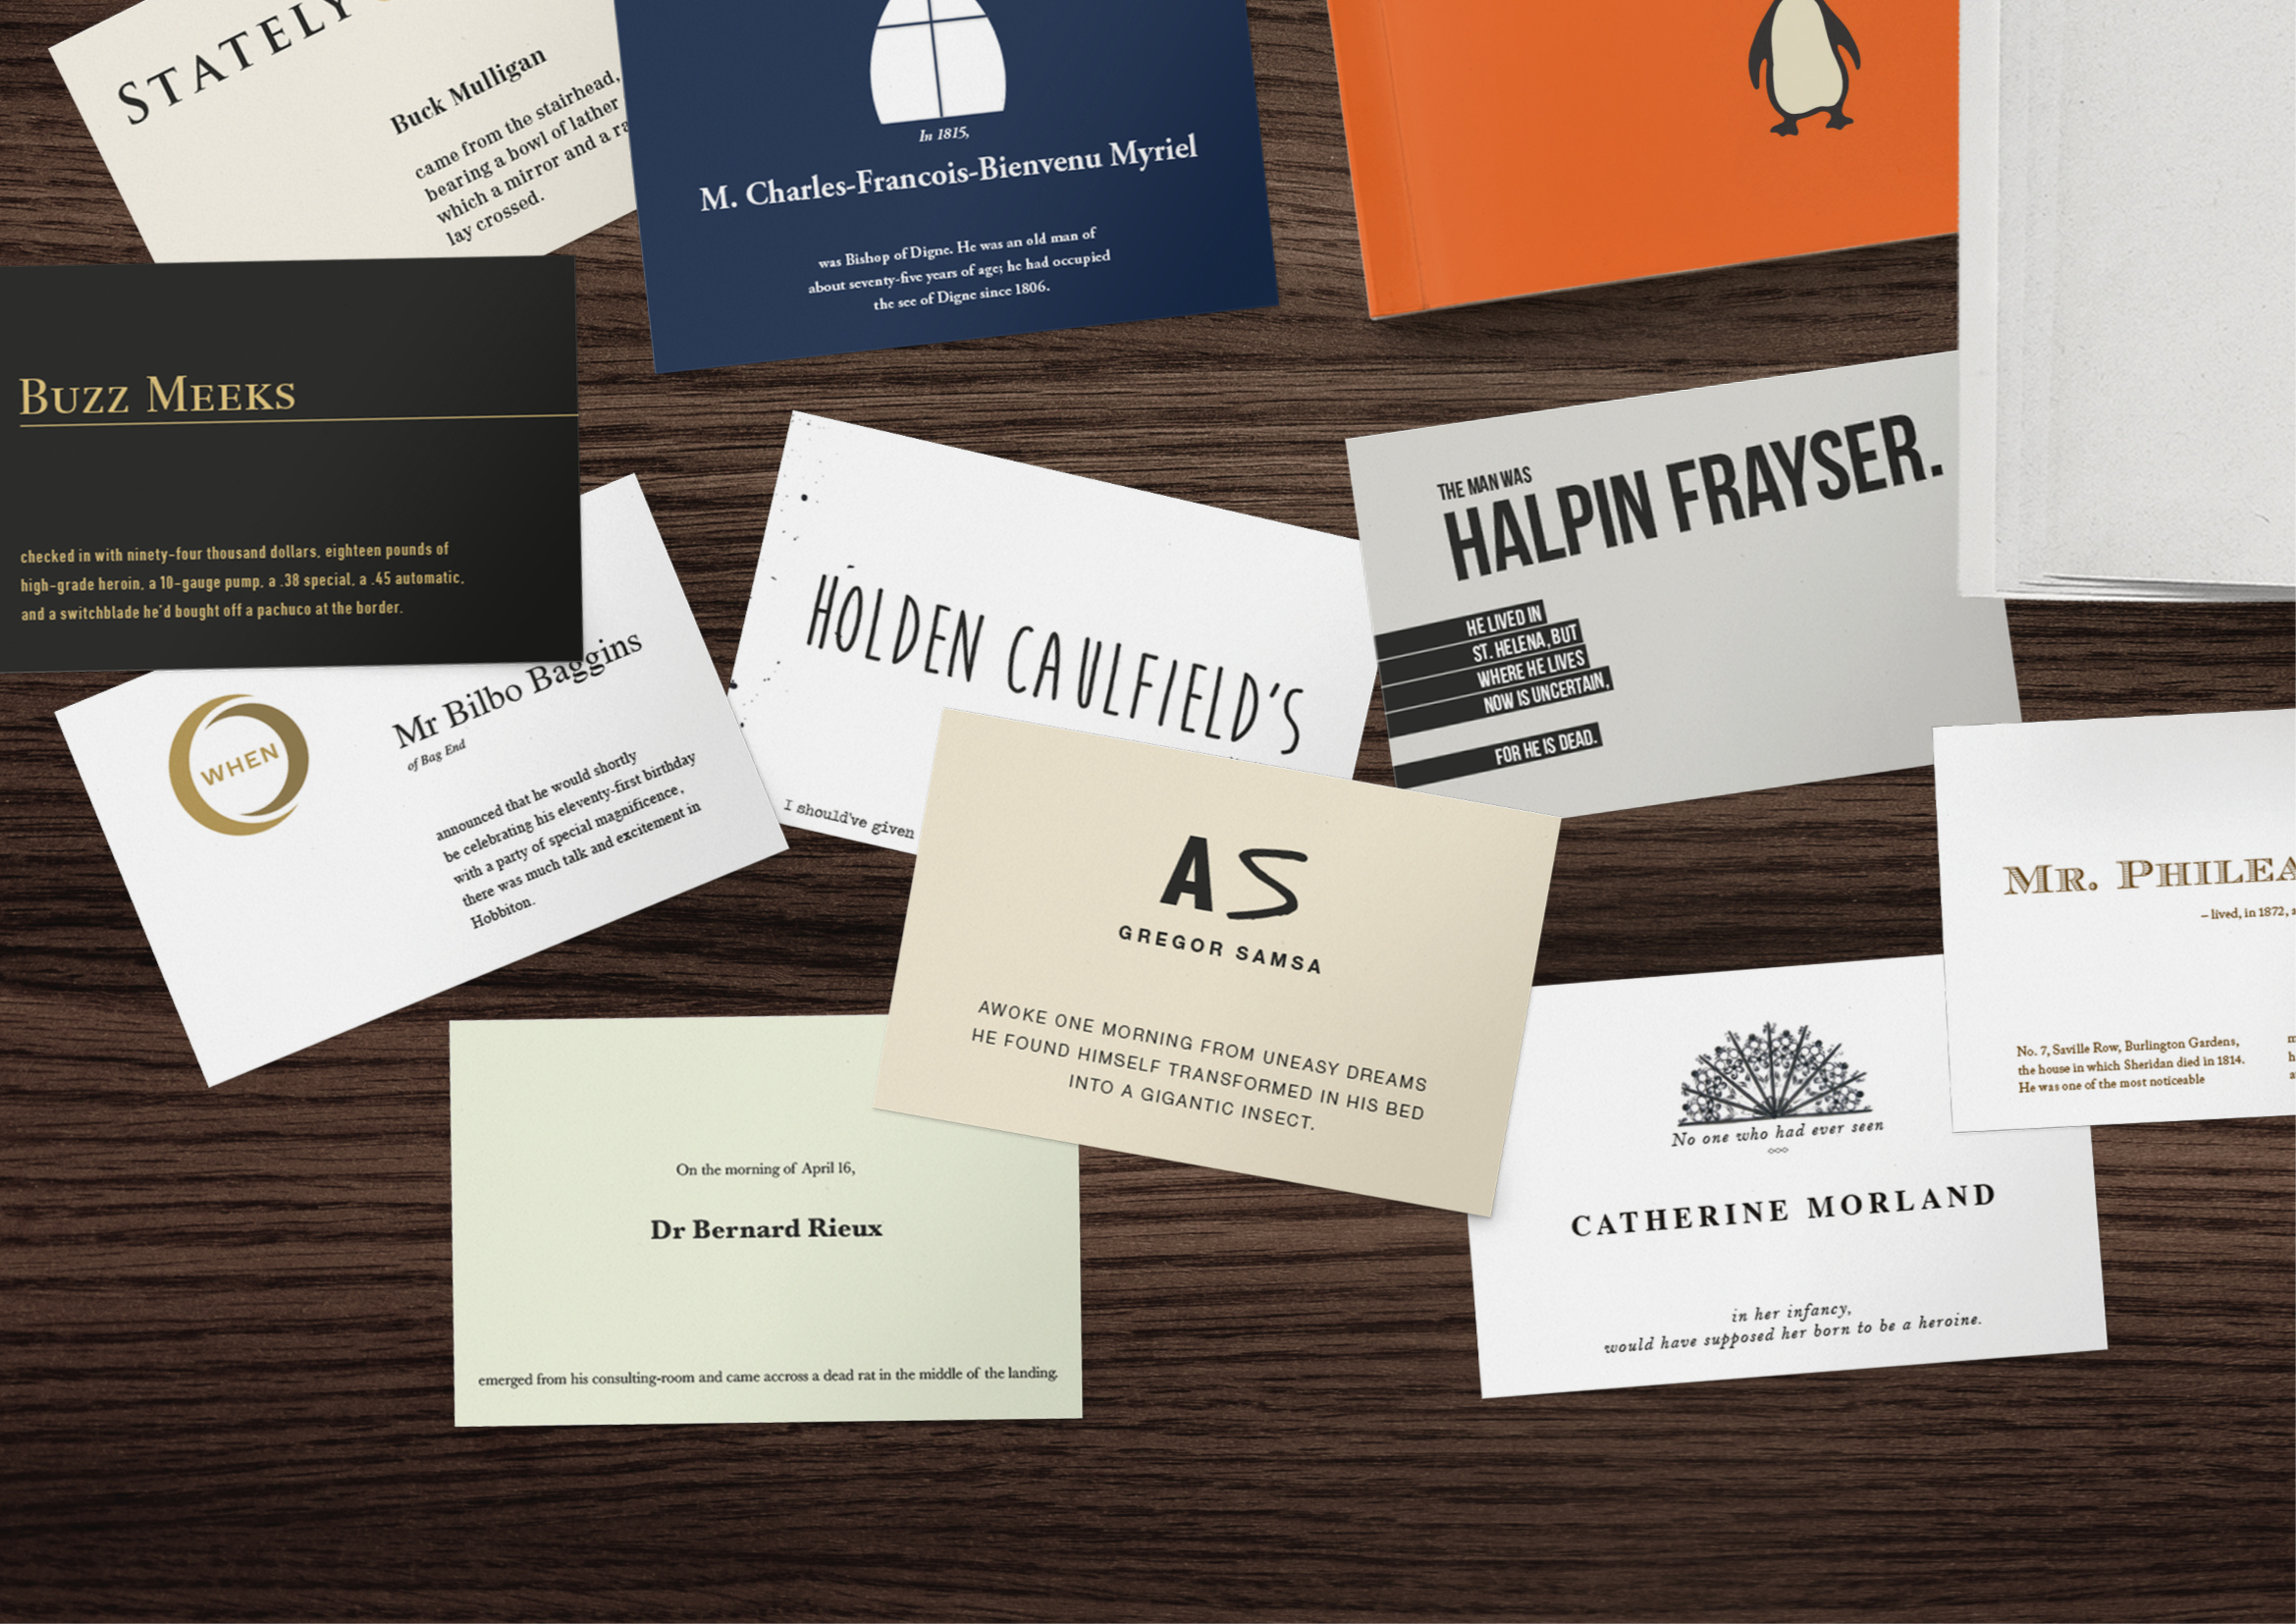 Raphael graber orell fssli bookshop literature business cards the literary business cards were distributed at the point of sale and sent out as a mailing reheart Image collections